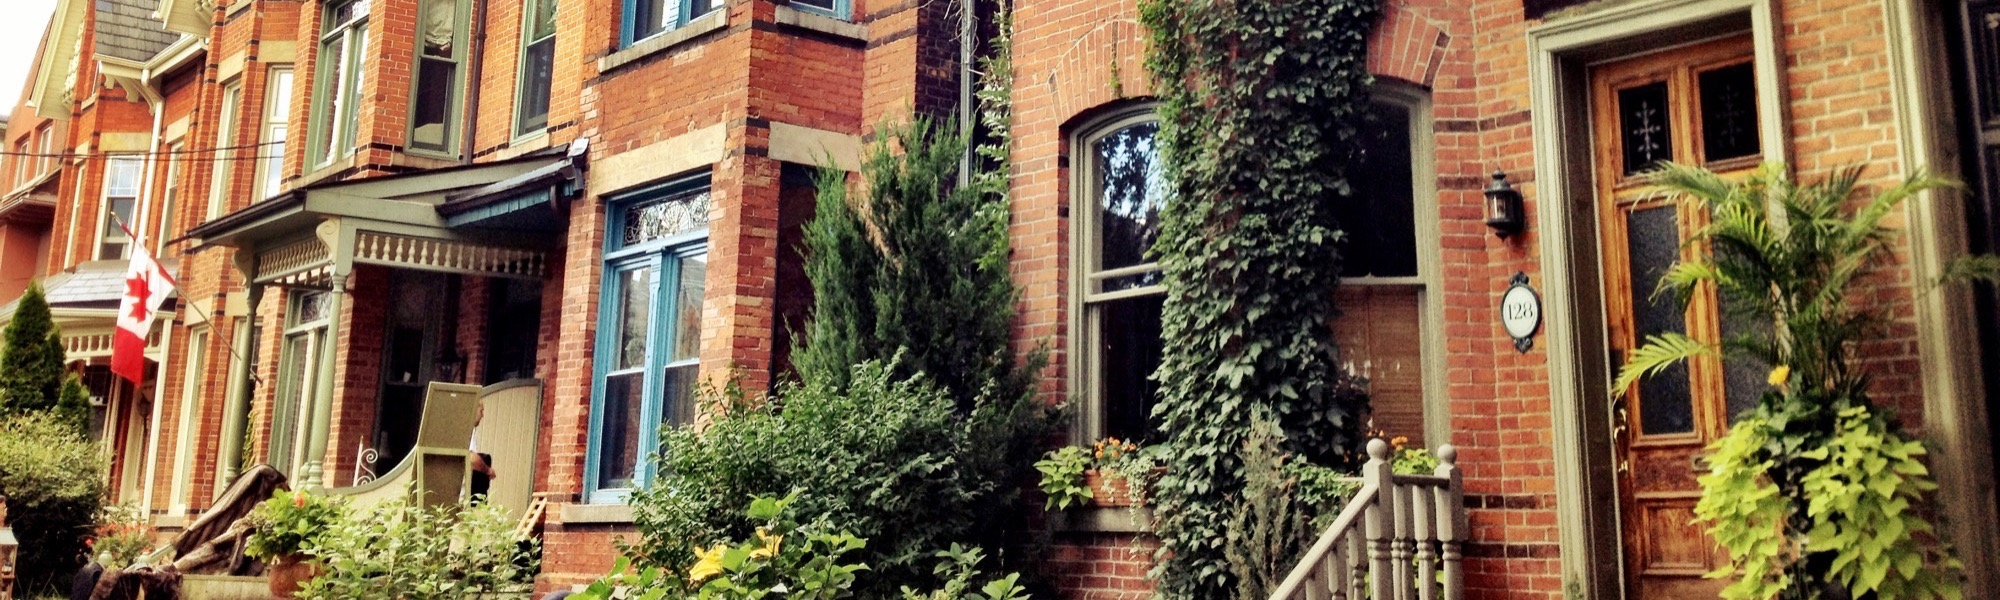 Housemaster Home Inspections Of Toronto Knob And Tube Wiring